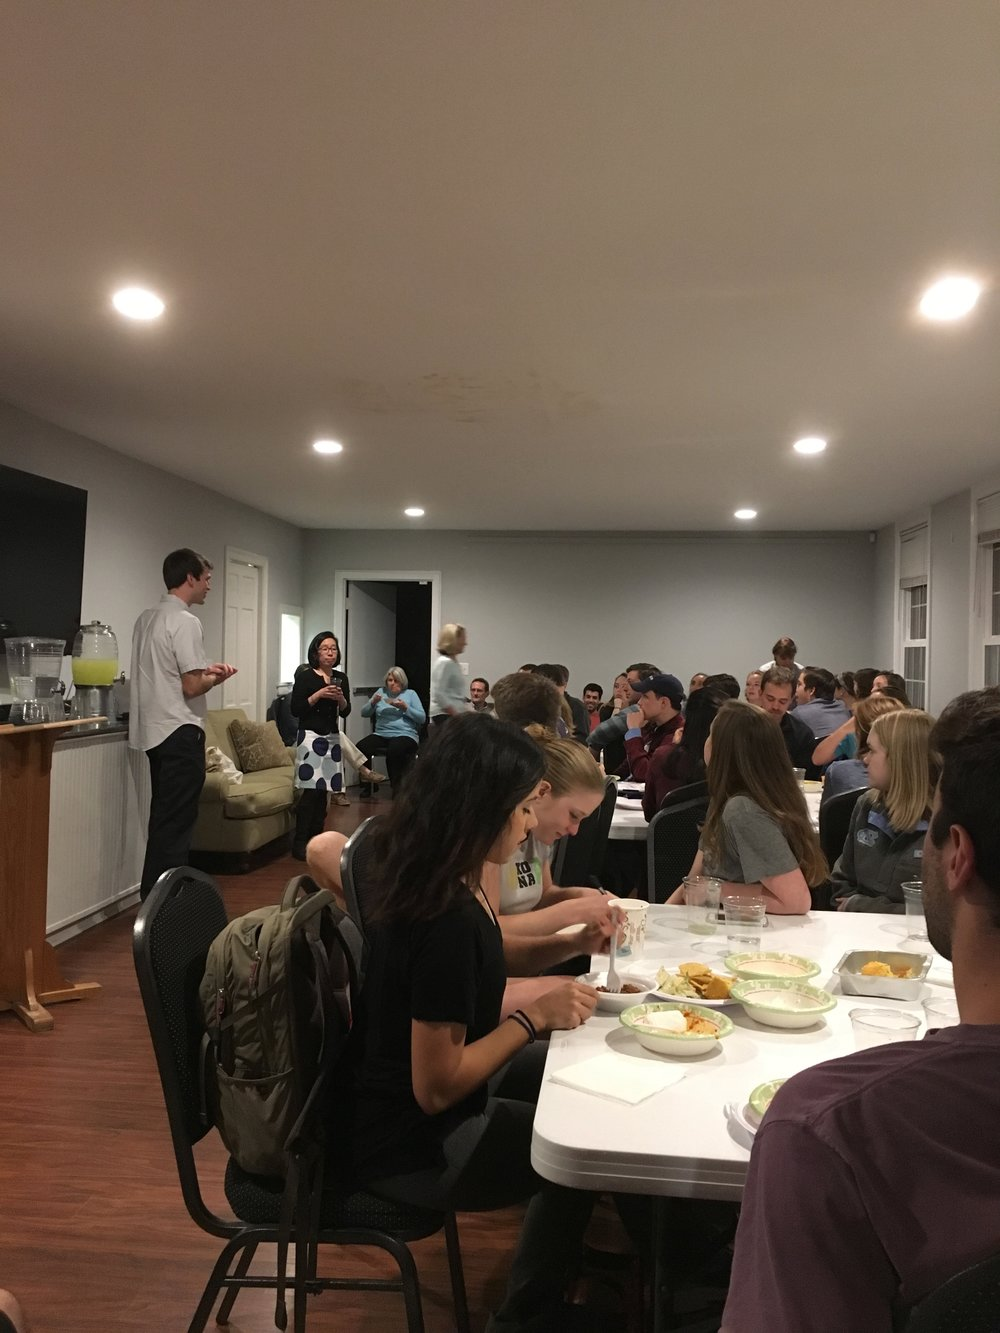 We hosted a dinner + speaker series on Monday nights called 4D dinners. This program brought students from different ministries together to hear about intersections of life, work and faith from alumni, community members and other guests.